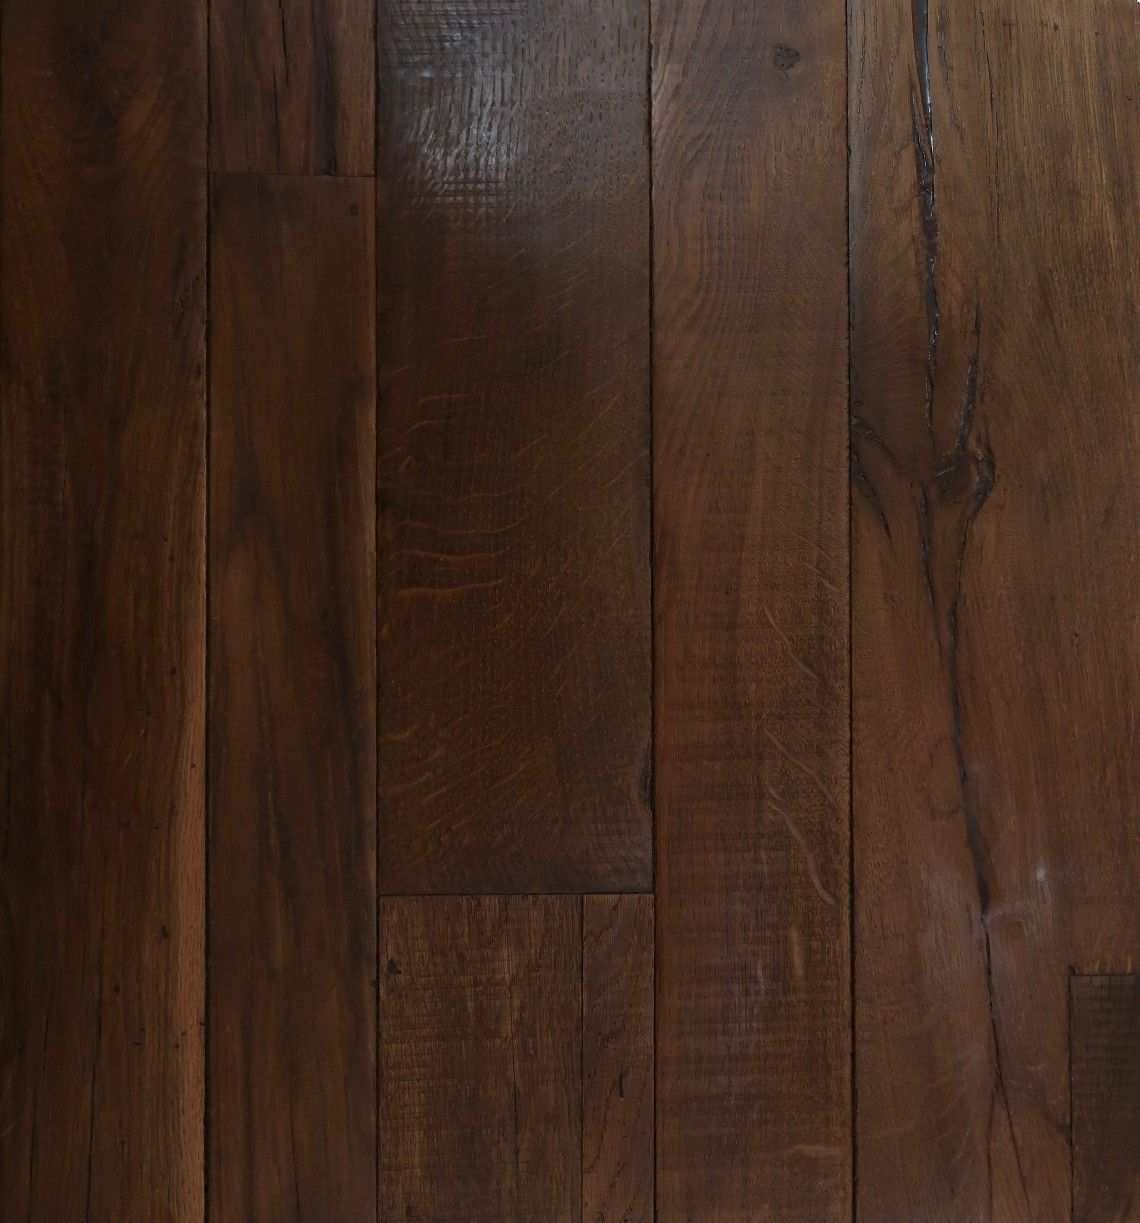 Craft Oak Engineered Smoked Reclaimed Wood Flooring Engineered Wood Flooring Uk Based In 2020 Wood Flooring Uk Engineered Wood Floors Reclaimed Wood Floors